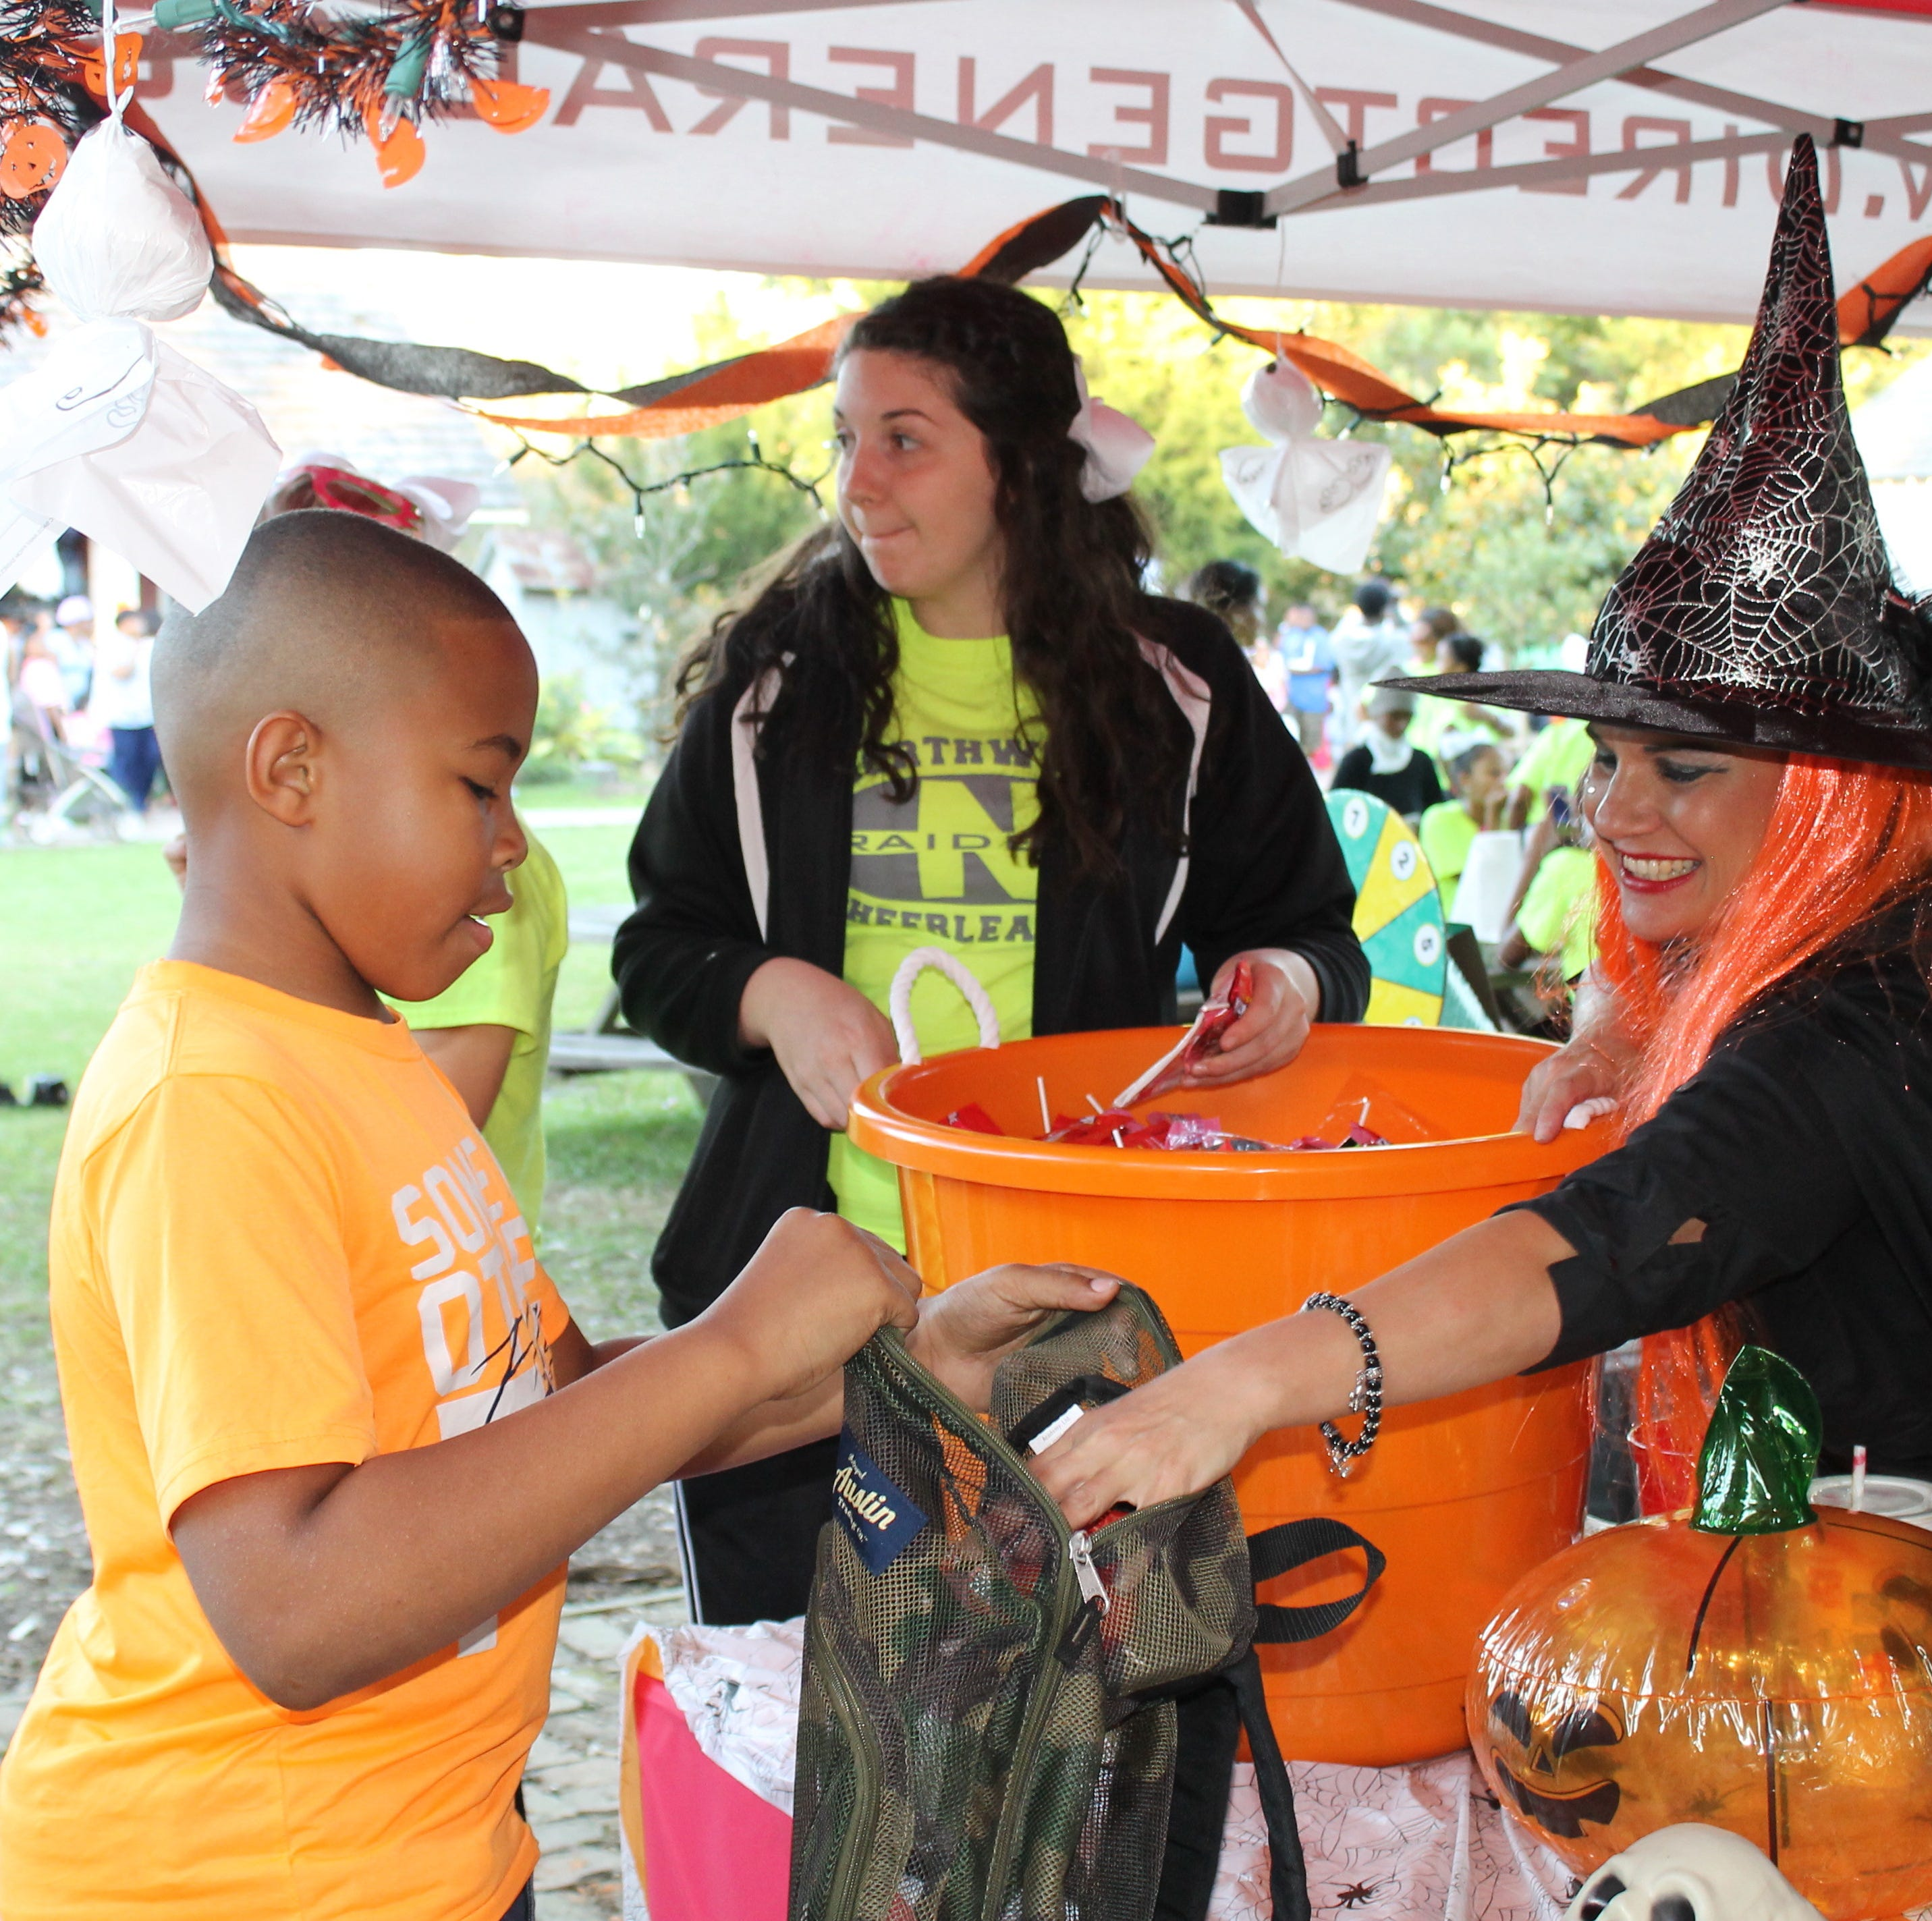 Annual safe Halloween for kids at Le Vieux Village set for Oct. 31